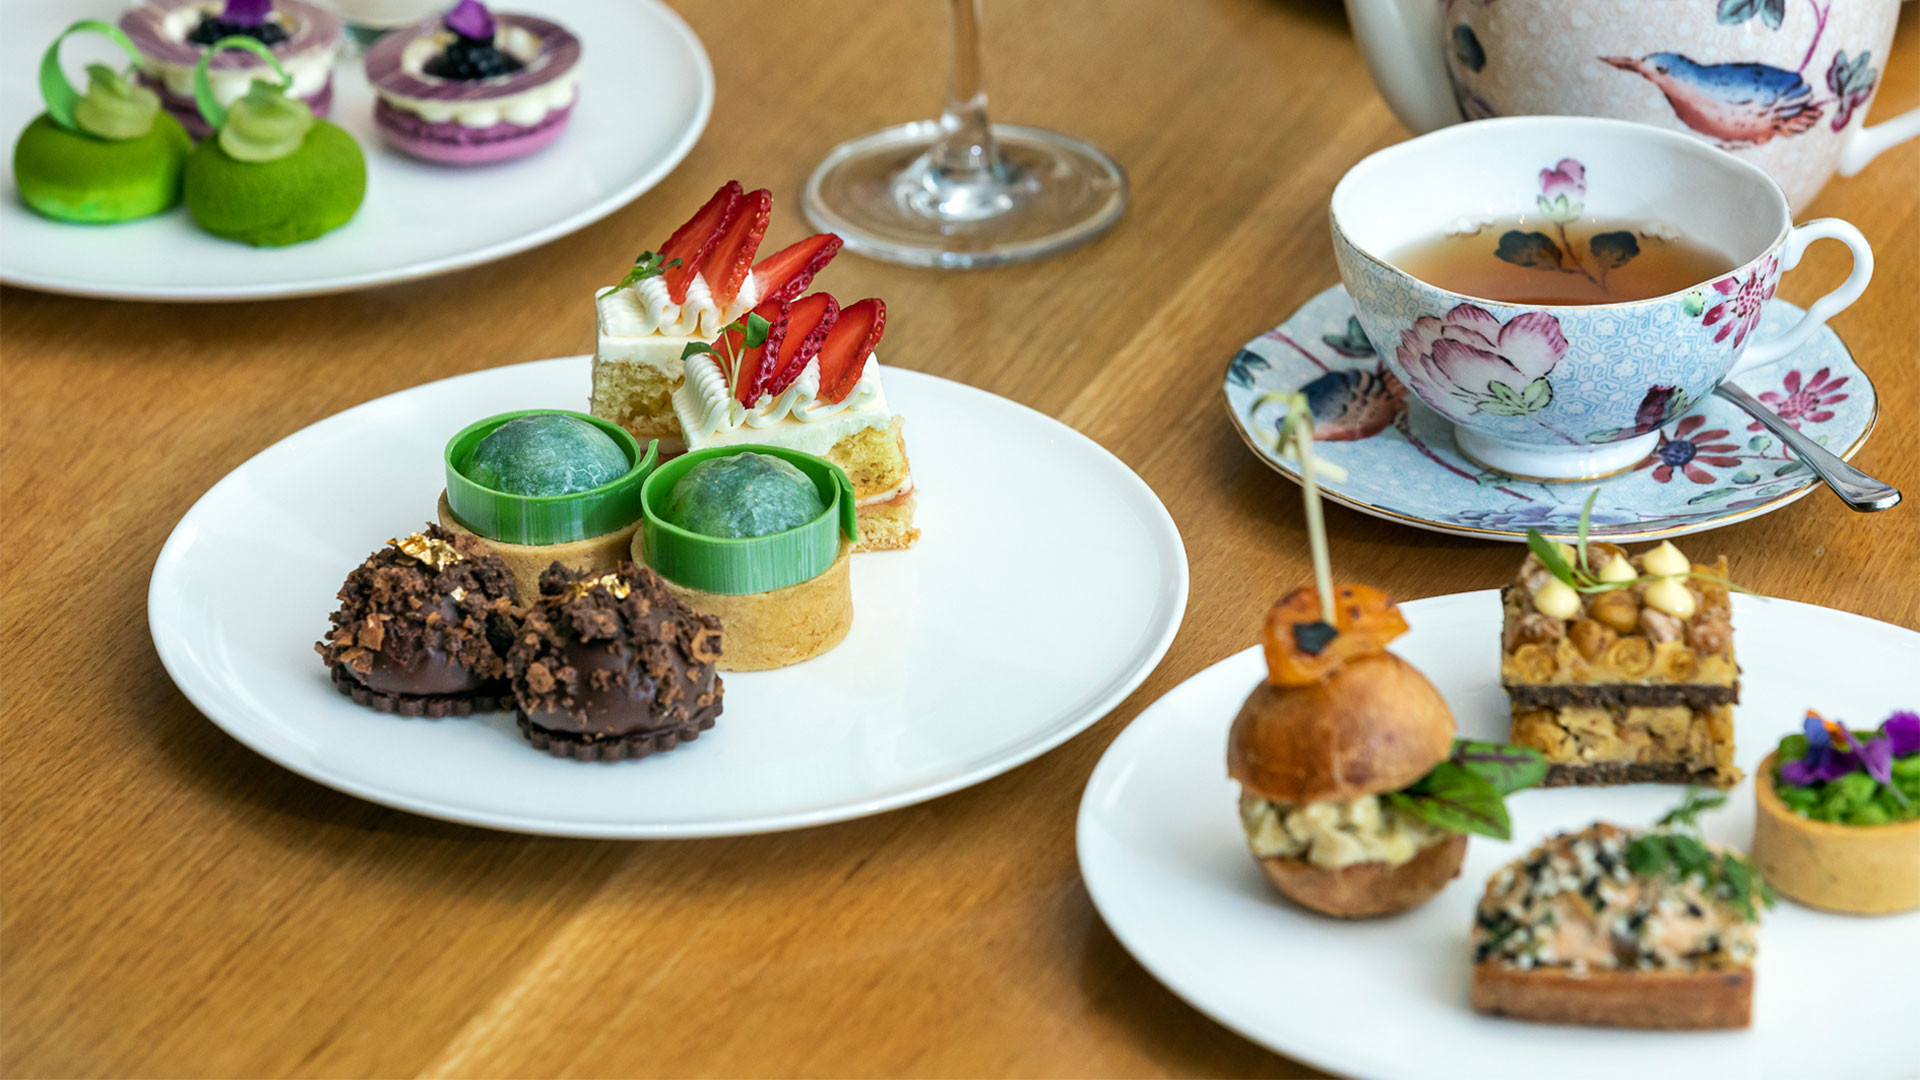 The best Toronto hotels for a staycation | Afternoon tea at The Shangri-La hotel